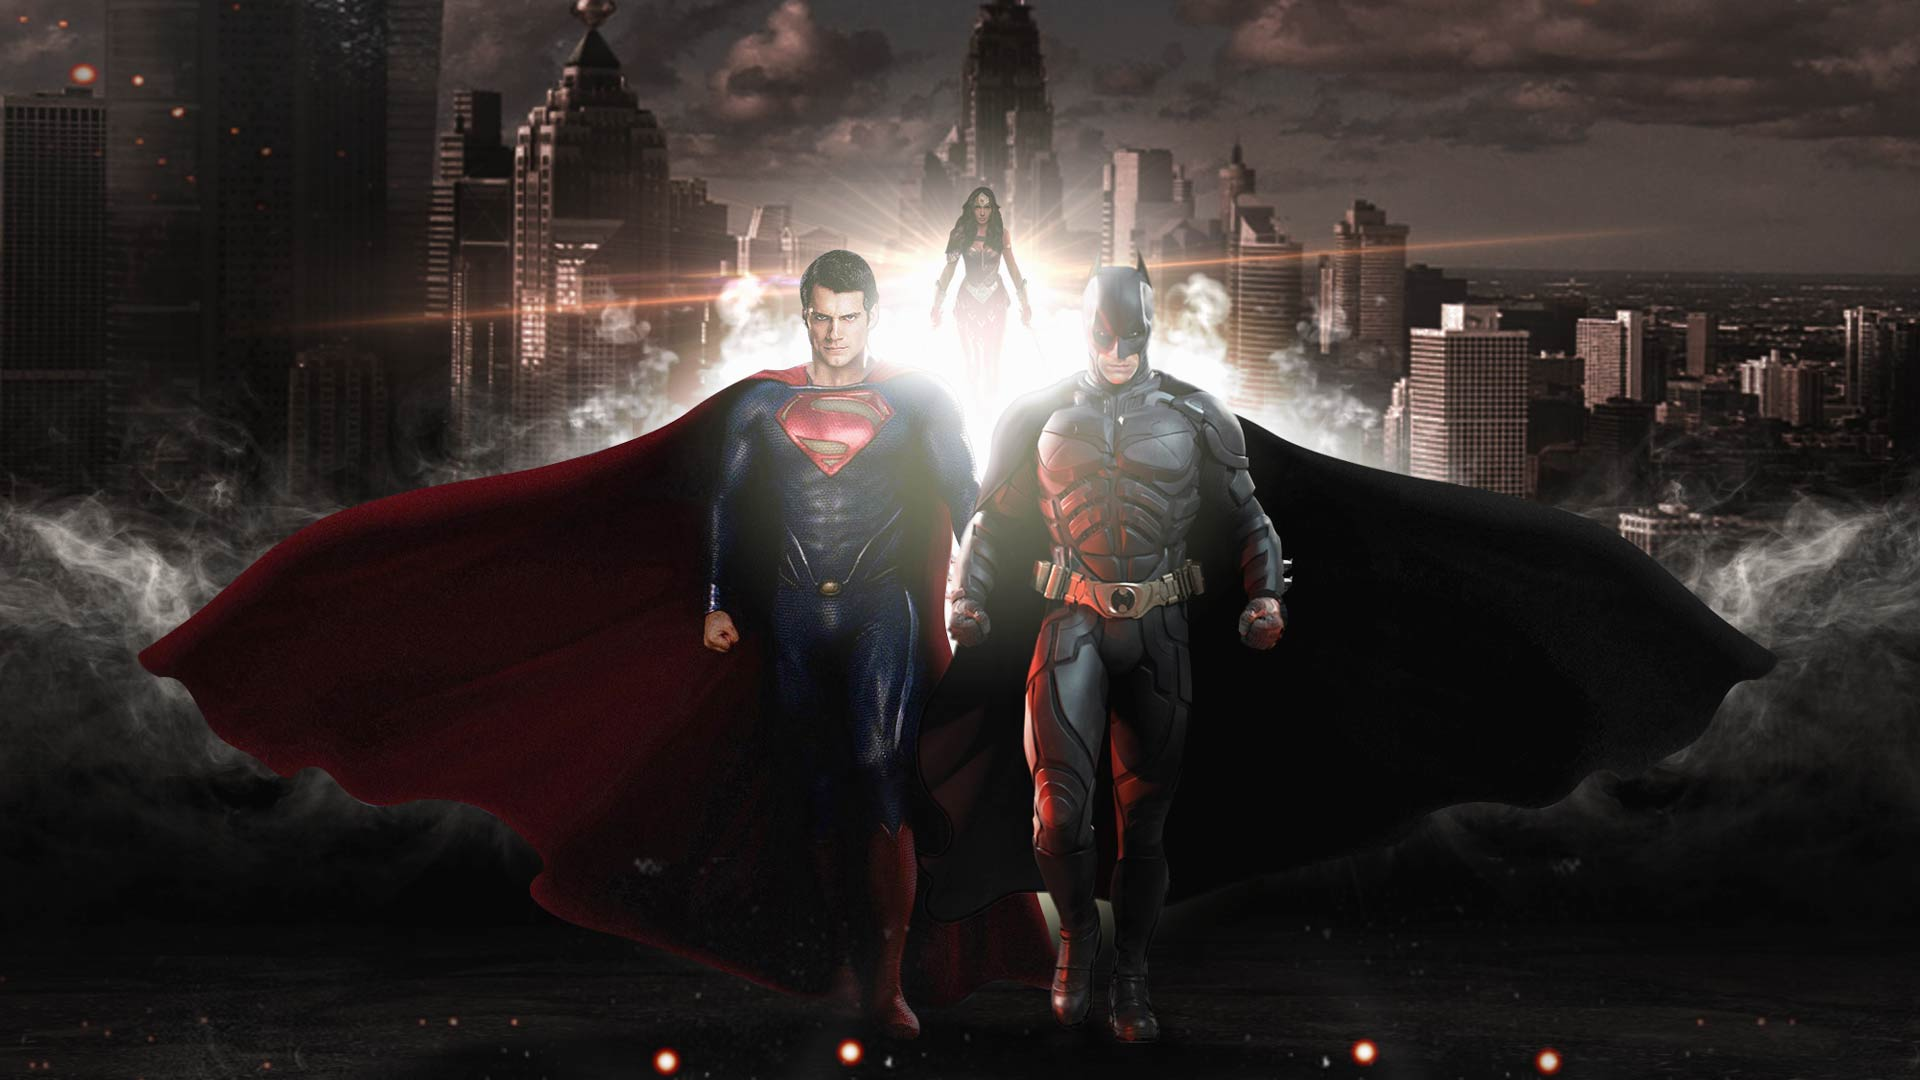 Batman-Superman-Face-Off-K-or-HD-for-your-PC-Mac-or-wallpaper-wpc5802530